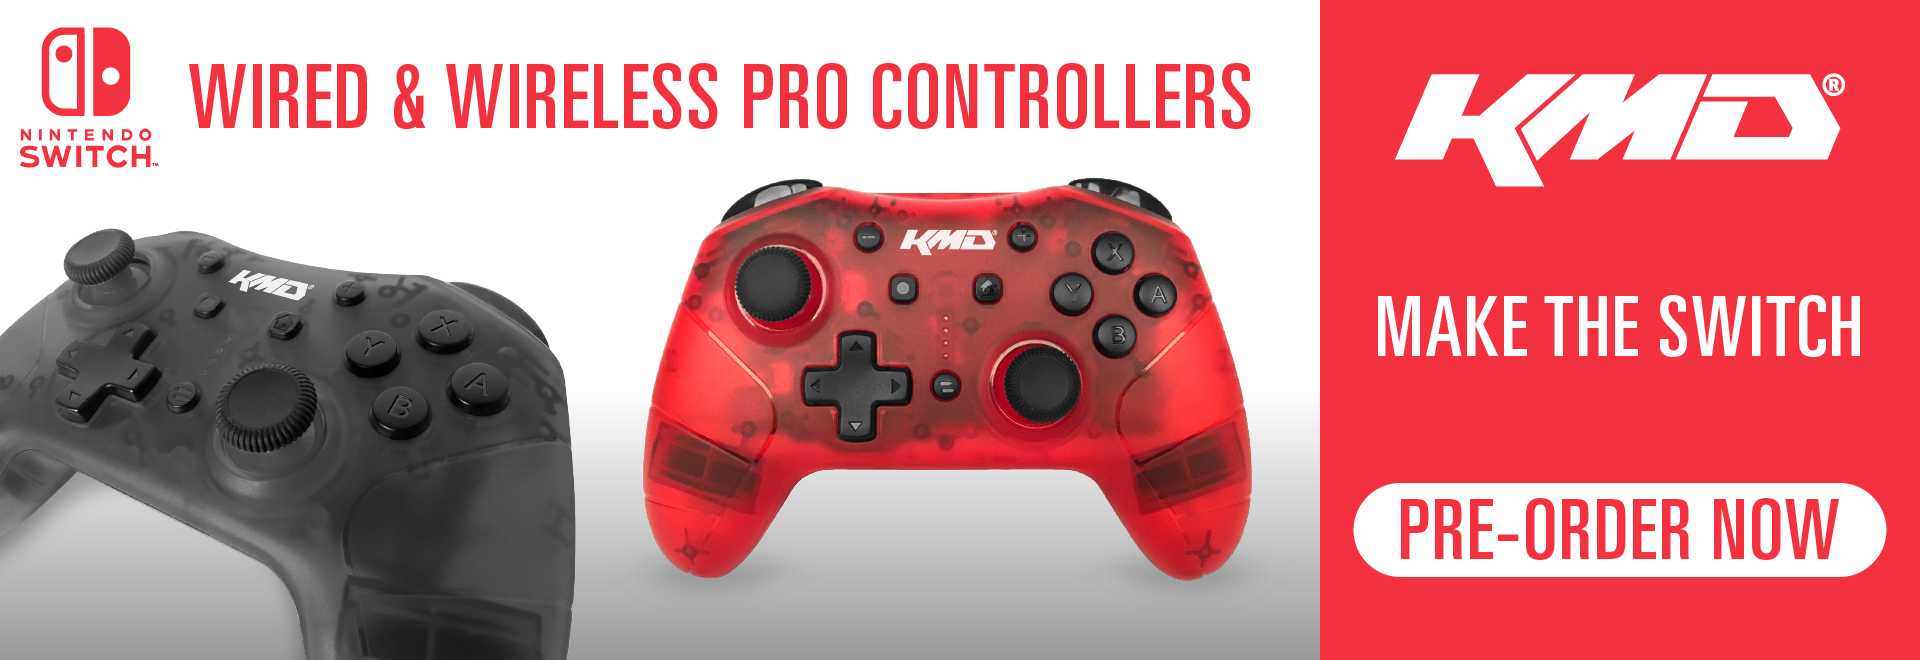 KMD Switch Pro Controllers